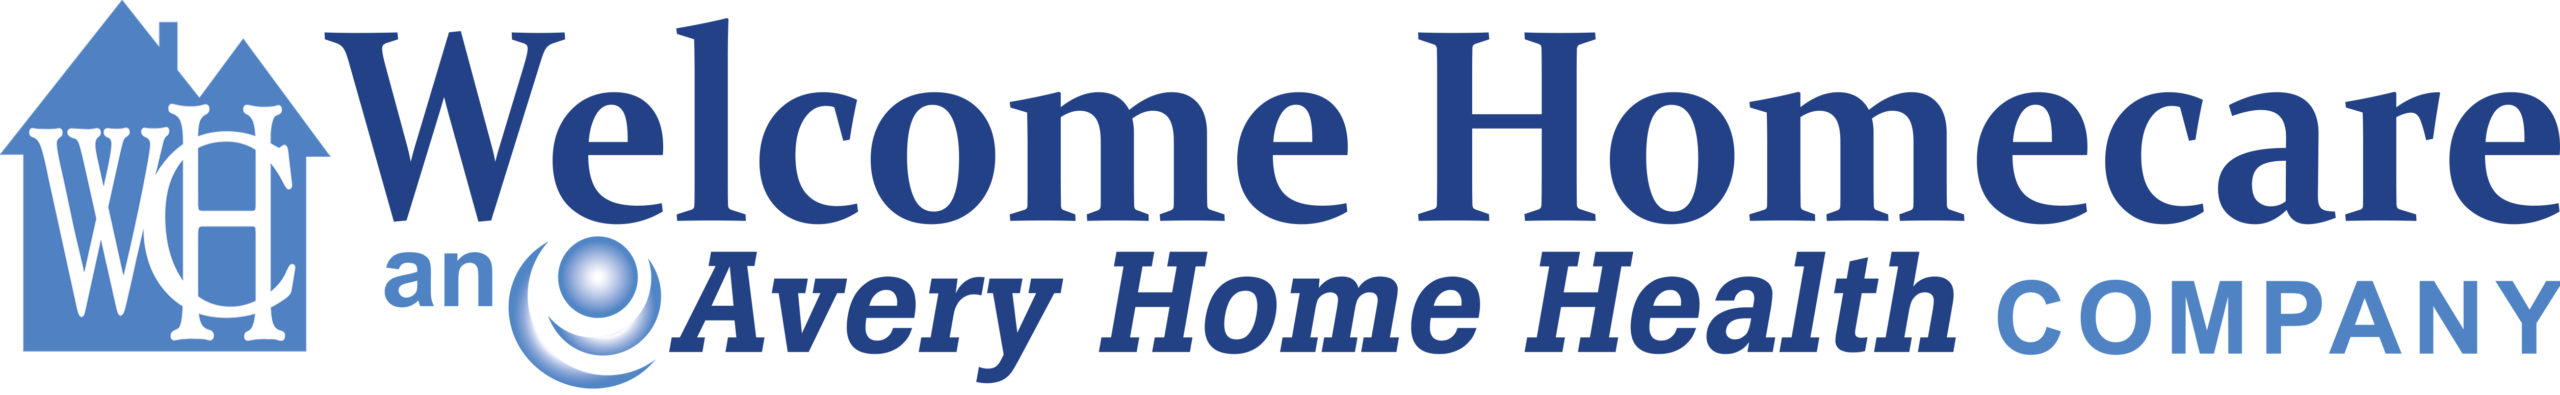 Welcome Homecare